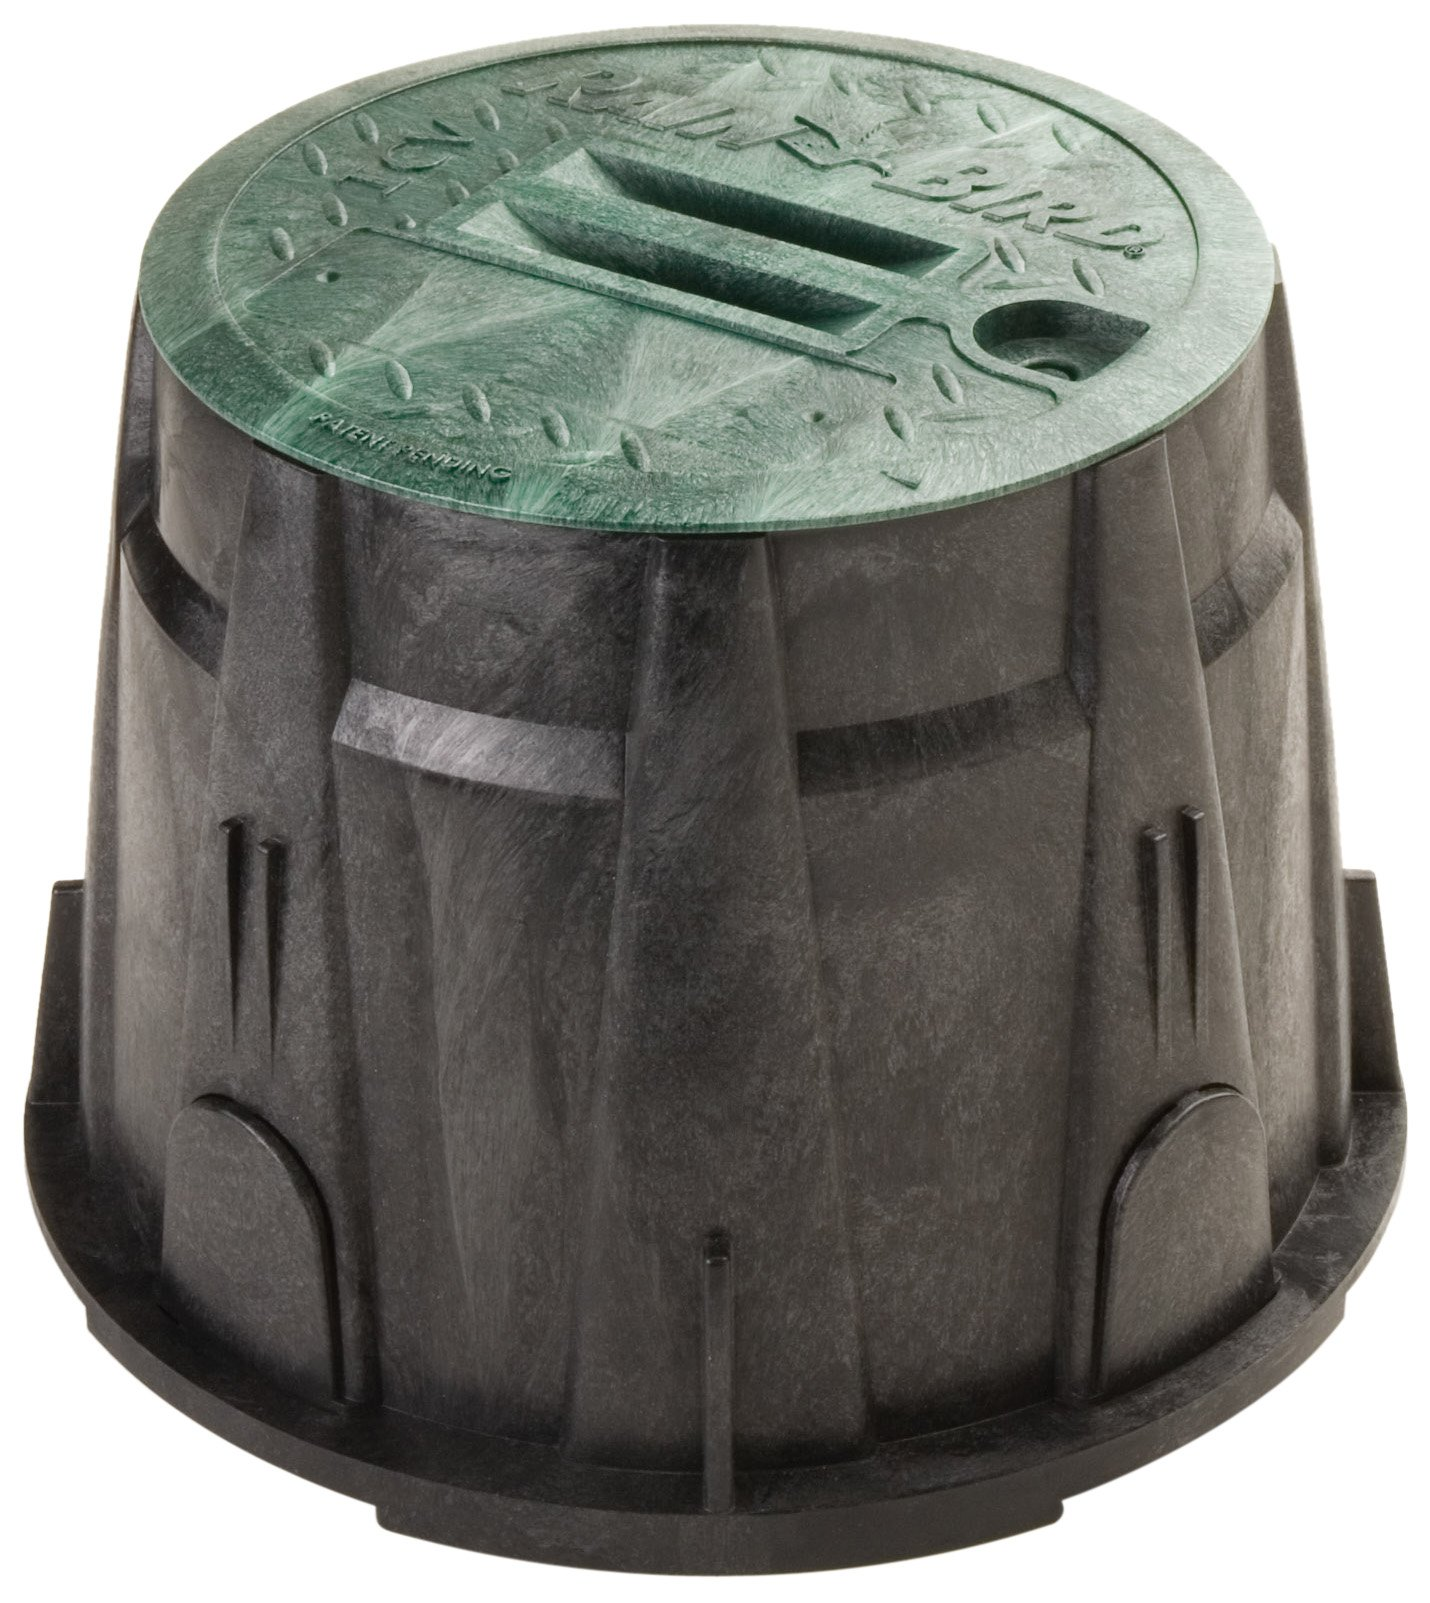 Rain Bird VBRND10 Round Sprinkler Valve Box, Black with Green Lid, 10'' High